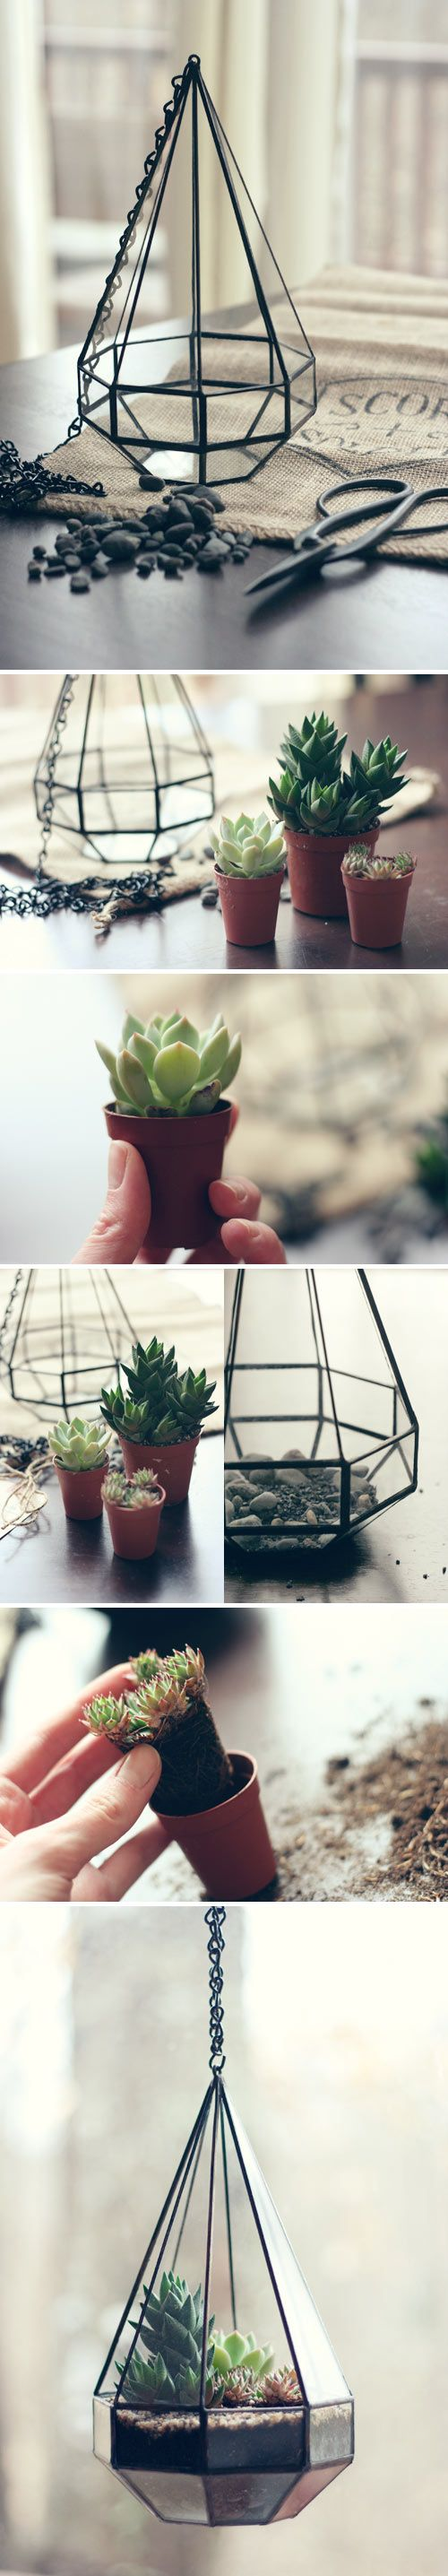 21 Simple Ideas For Adorable DIY Terrariums - BuzzFeed Mobile